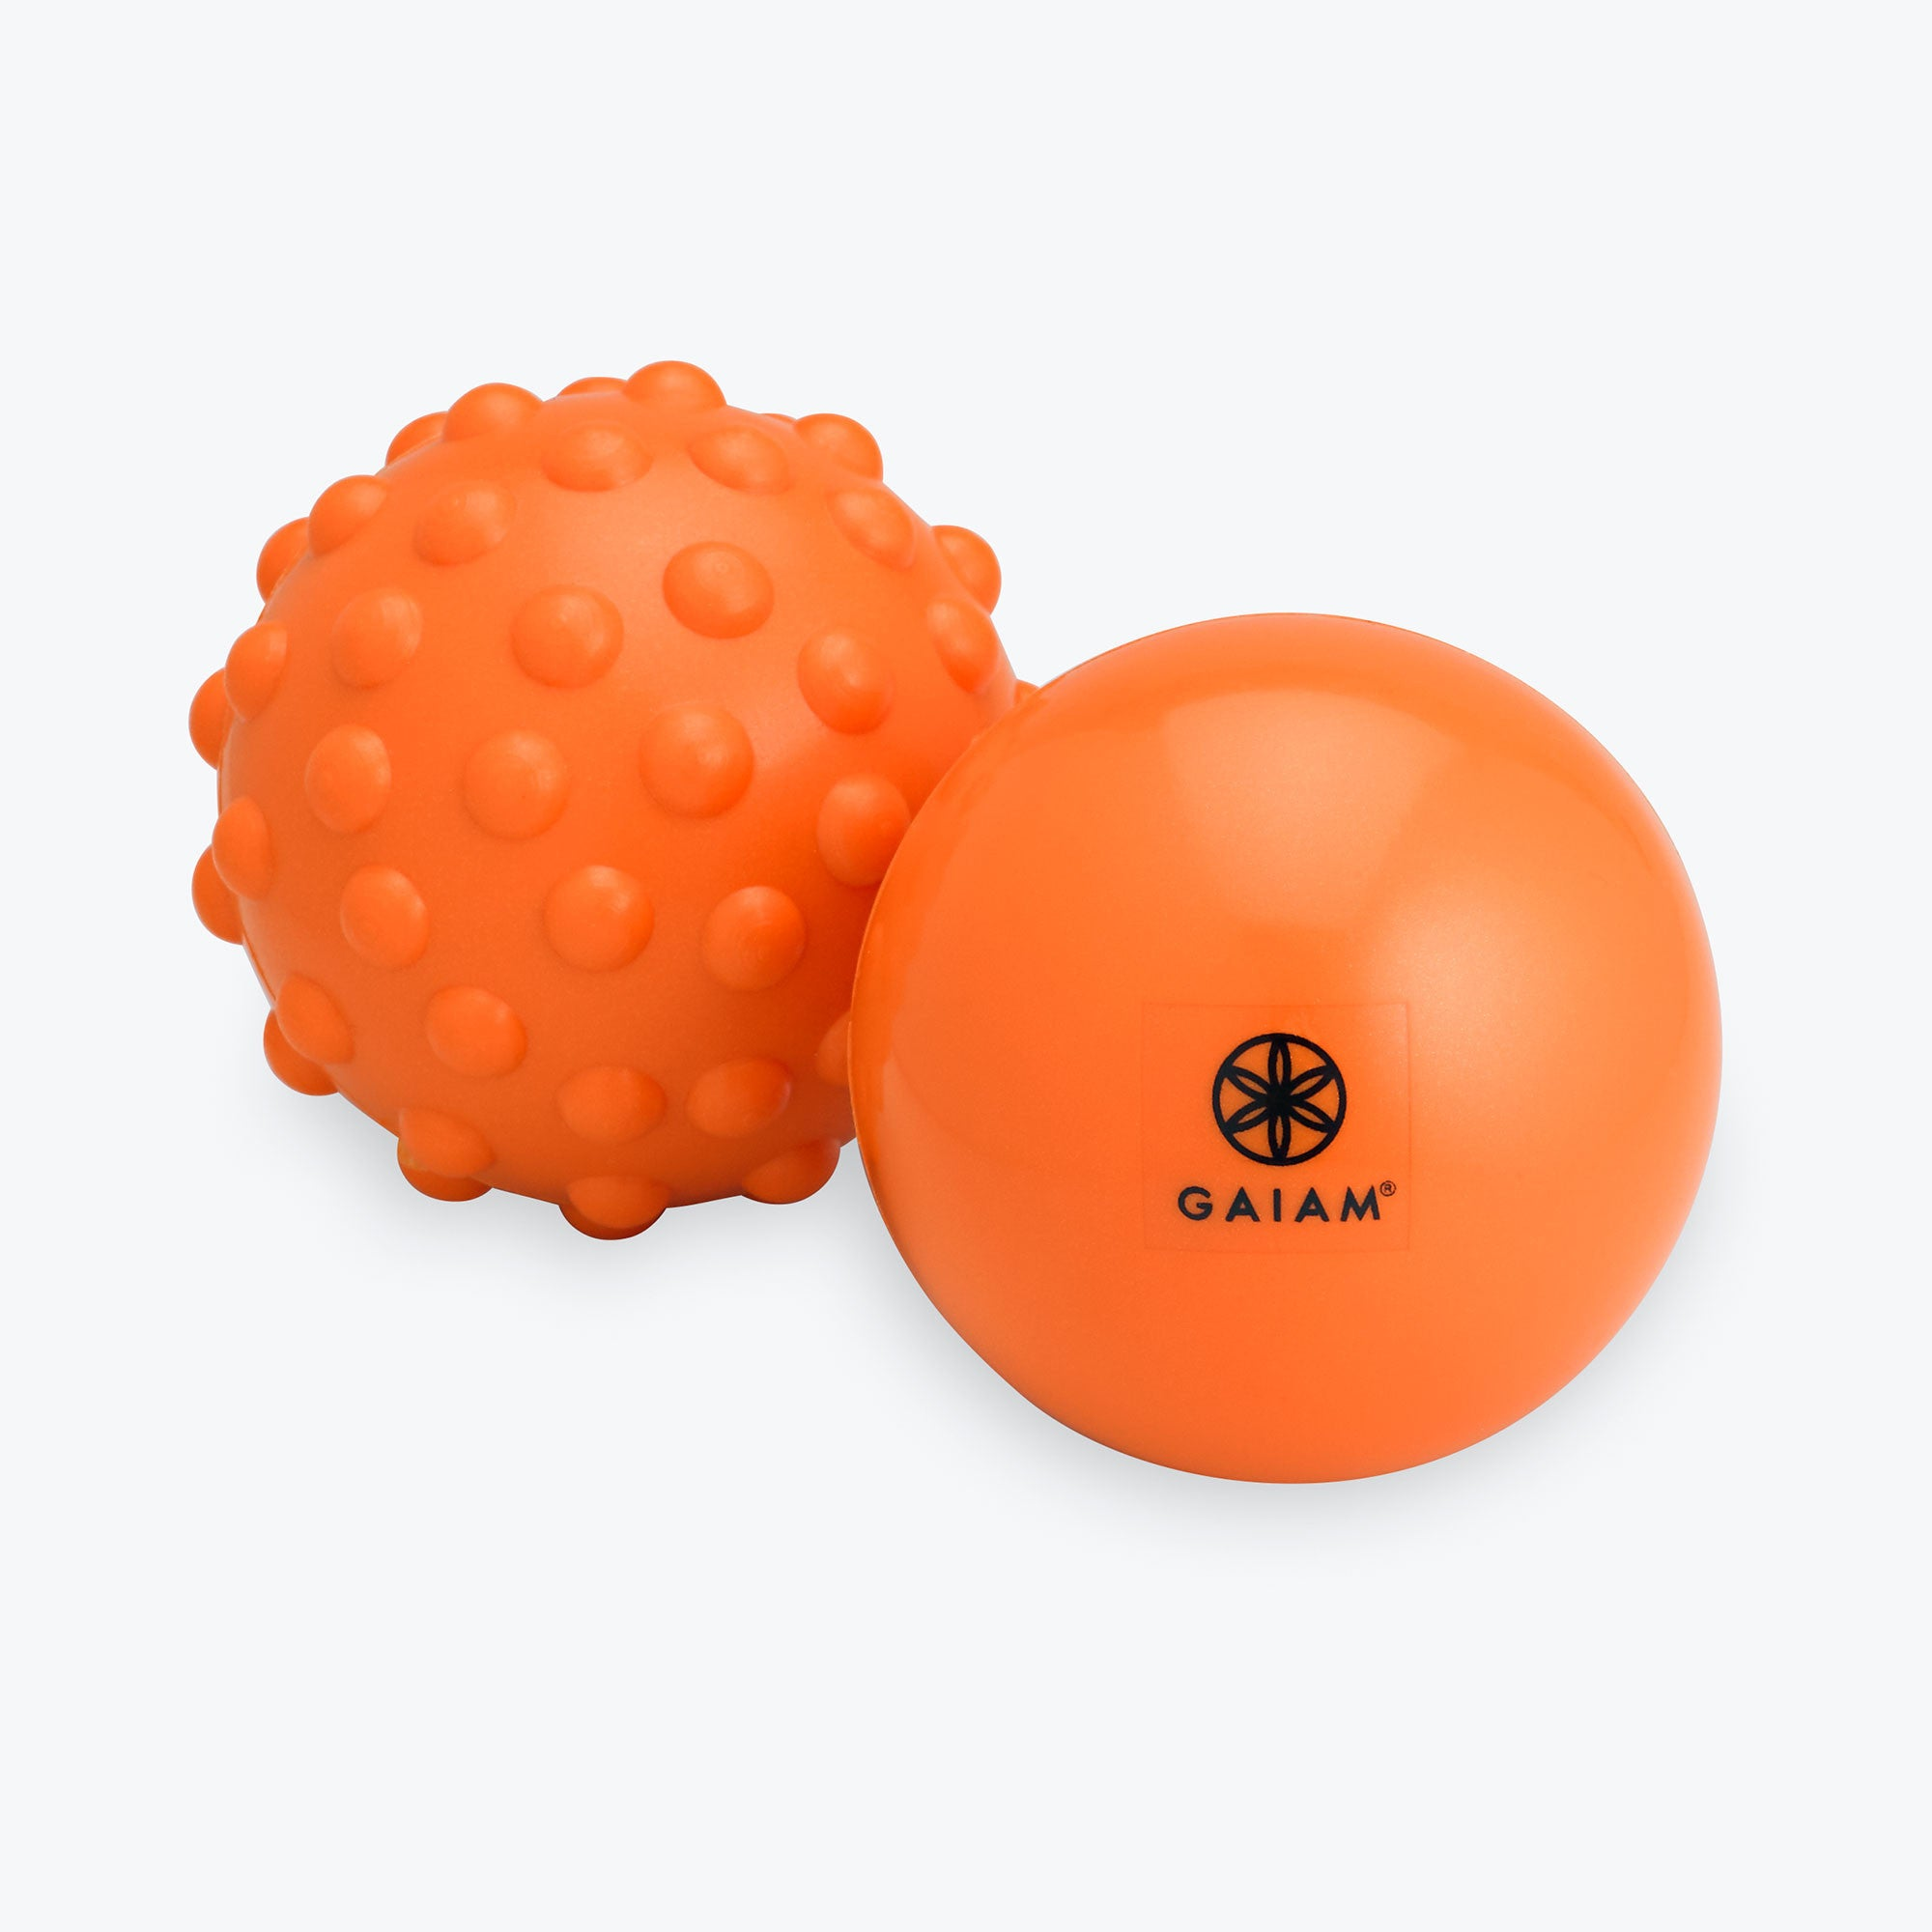 Gaiam Restore Hot & Cold Massaging Ball Therapy Kit